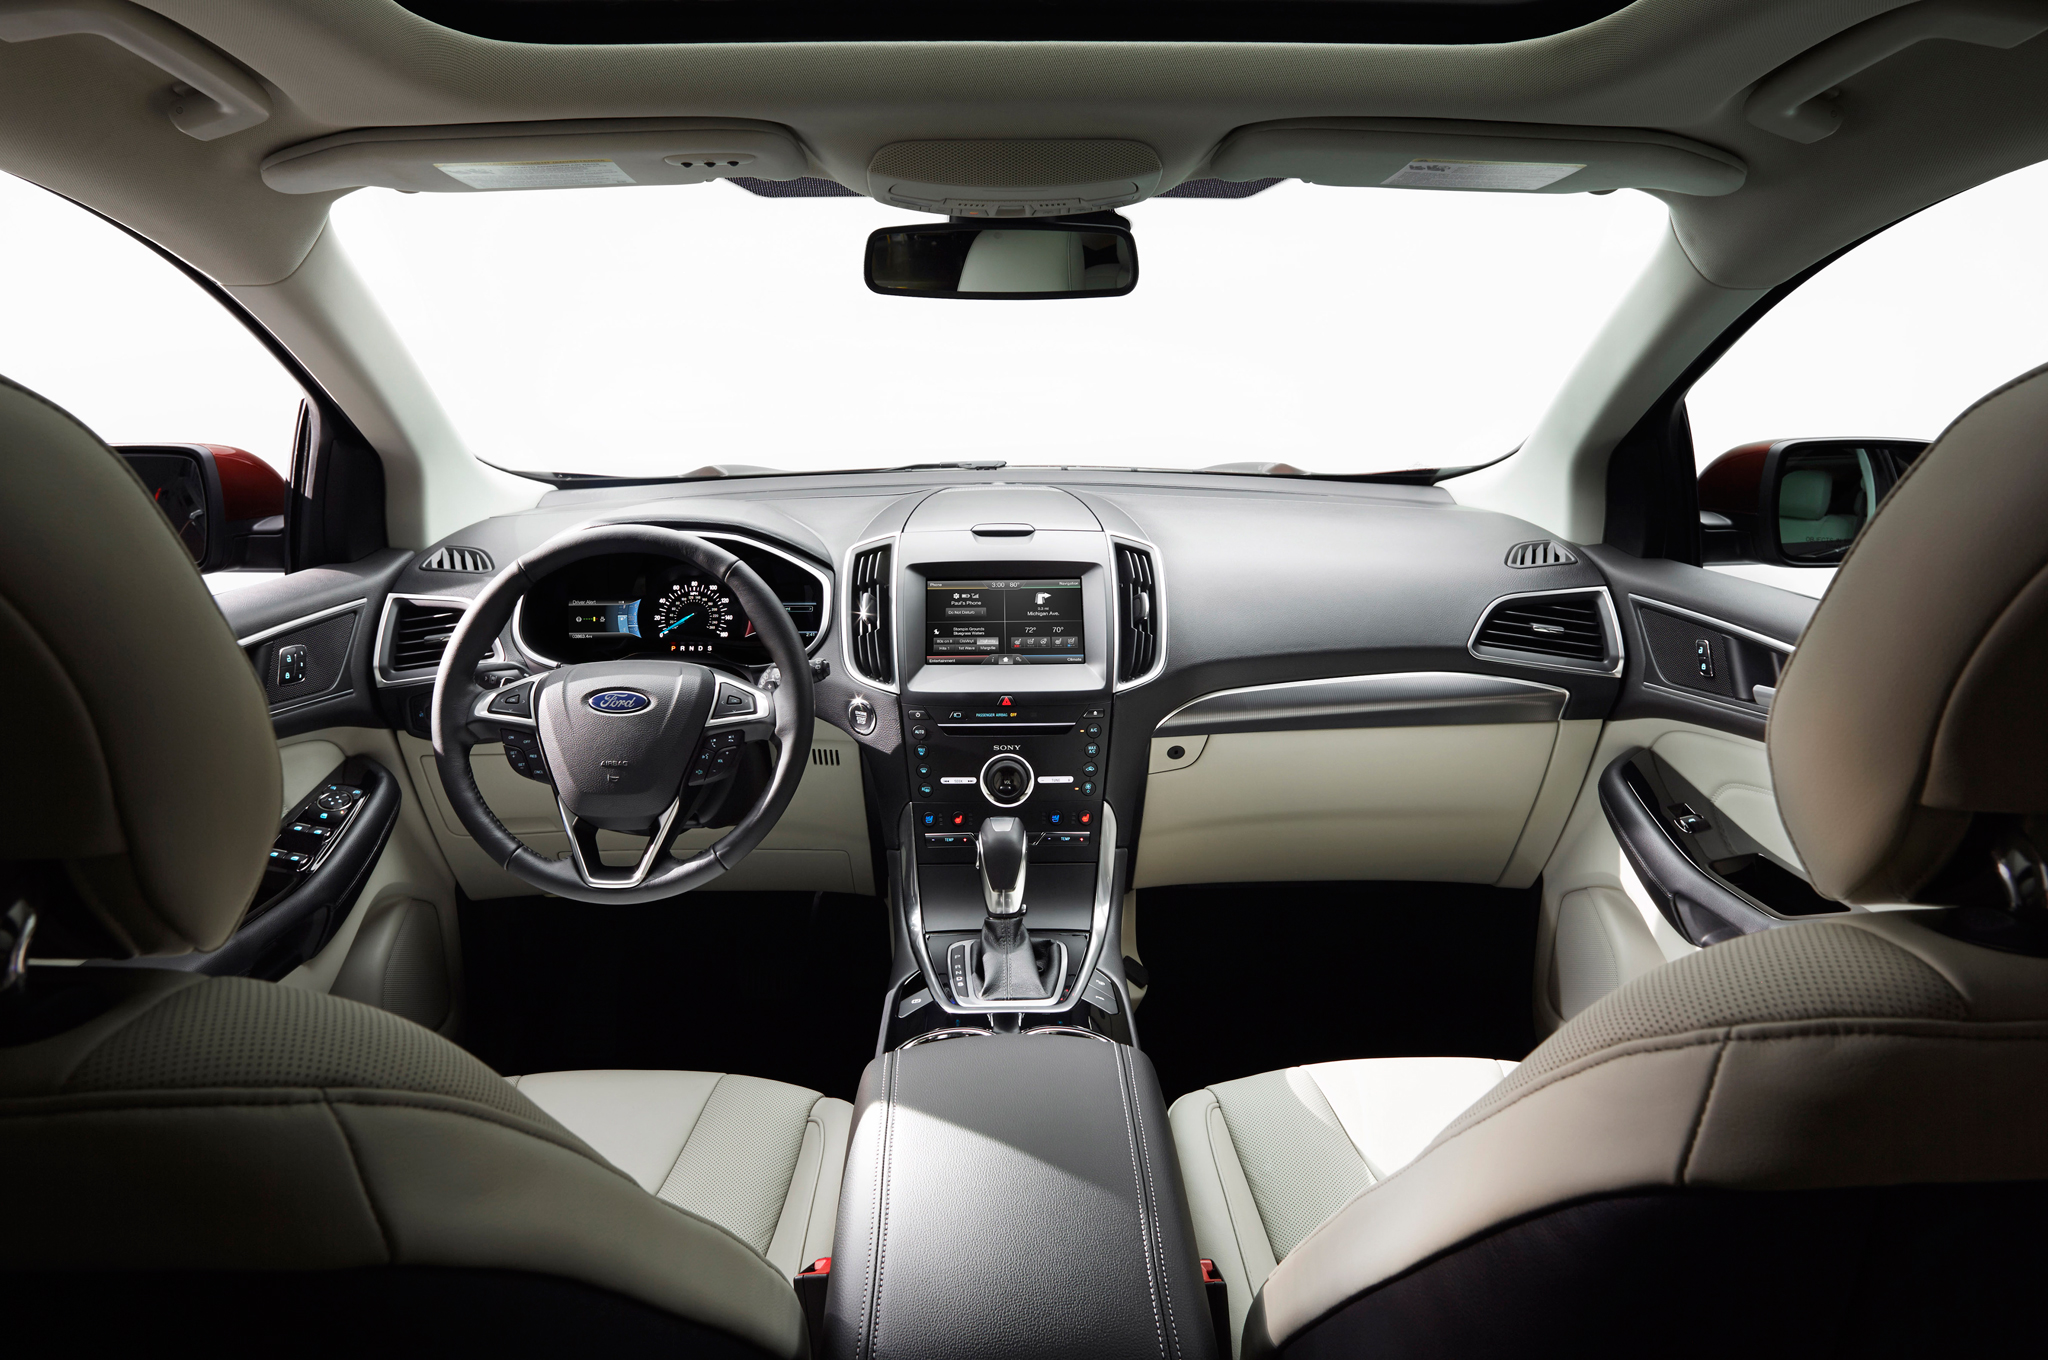 Ford Edge Review Rh Automobilemag Com  Ford Edge Specs Canada  Ford Edge Sel Awd Specs